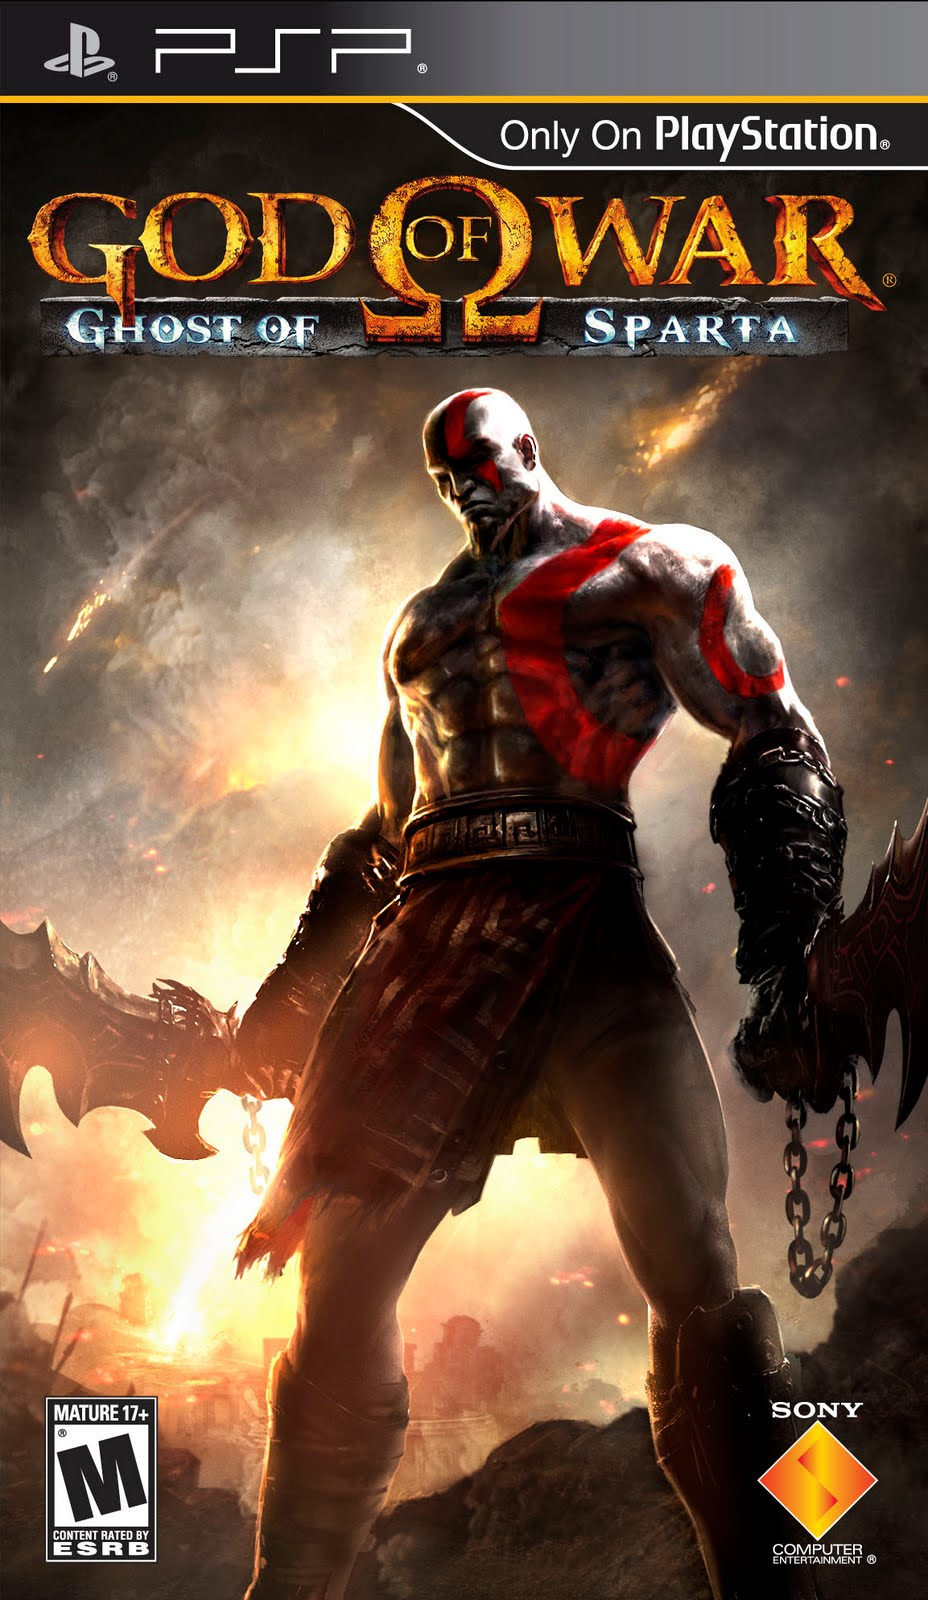 God of war ghost of sparta (usa) iso < psp isos | emuparadise.